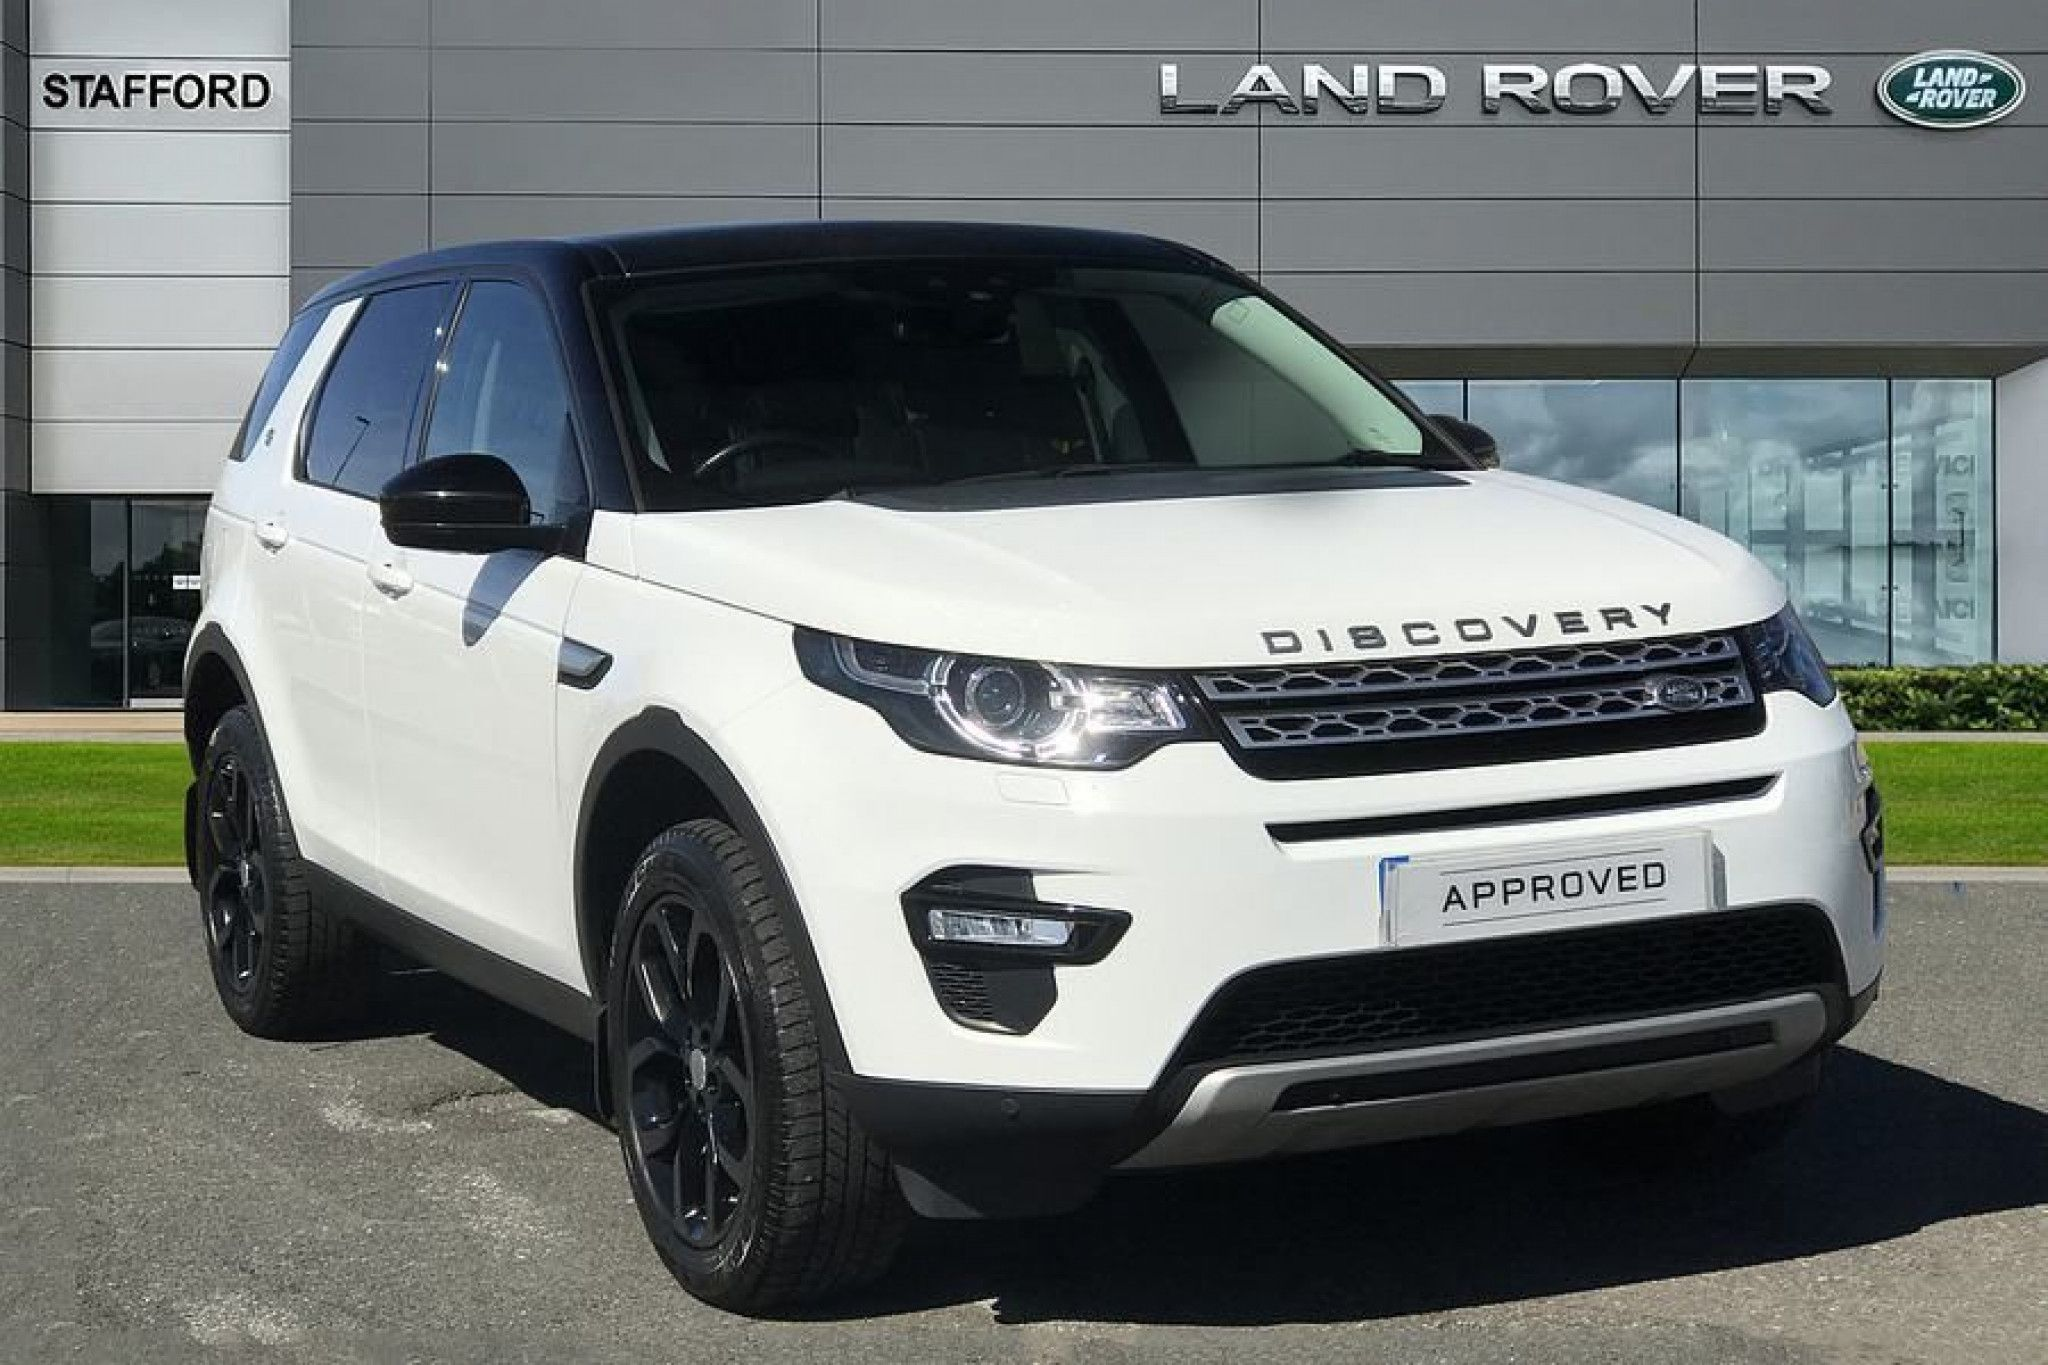 Land Rover Discovery Sport 2 0 Td4 180 Hse 5dr Auto Land Rover Discovery Sport Carsforsale In 2020 Land Rover Discovery Sport Land Rover Discovery Land Rover